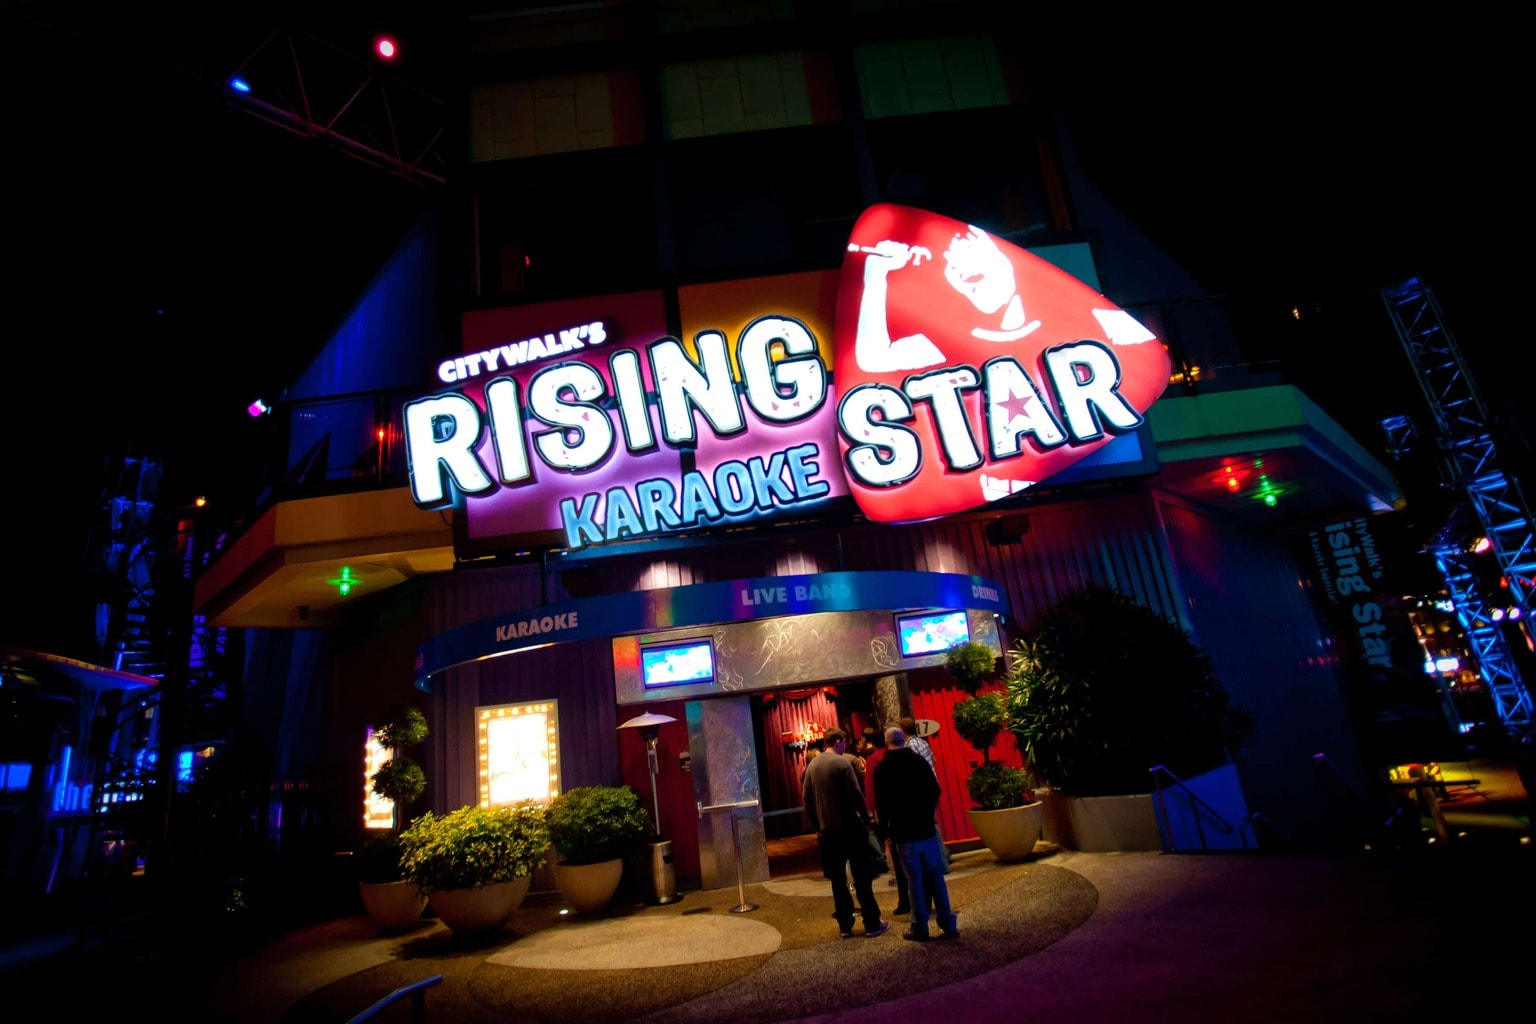 CityWalk's Rising Star entrance